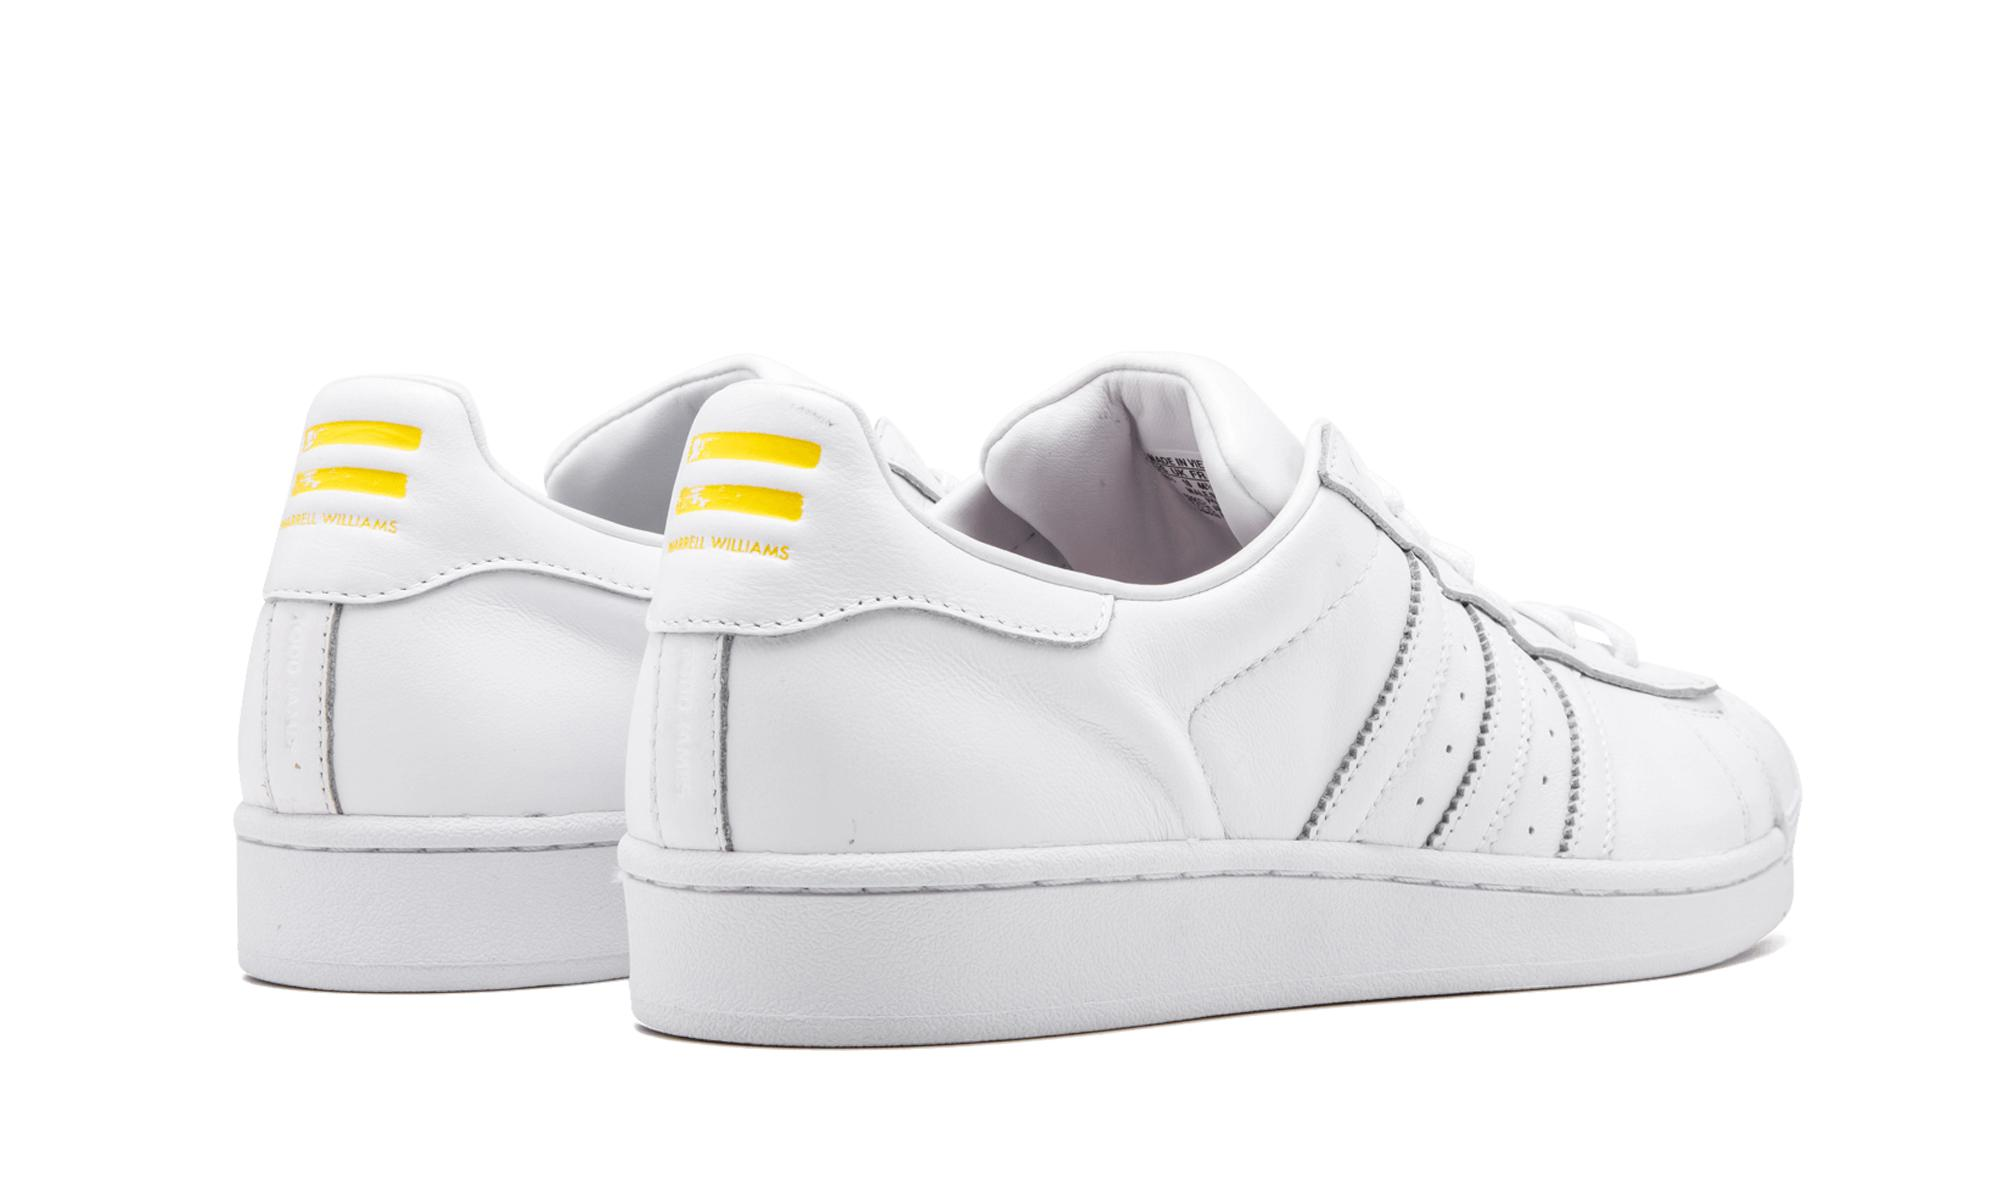 66f5975c3 Adidas - White Superstar Pharrell Supershell - Lyst. View fullscreen